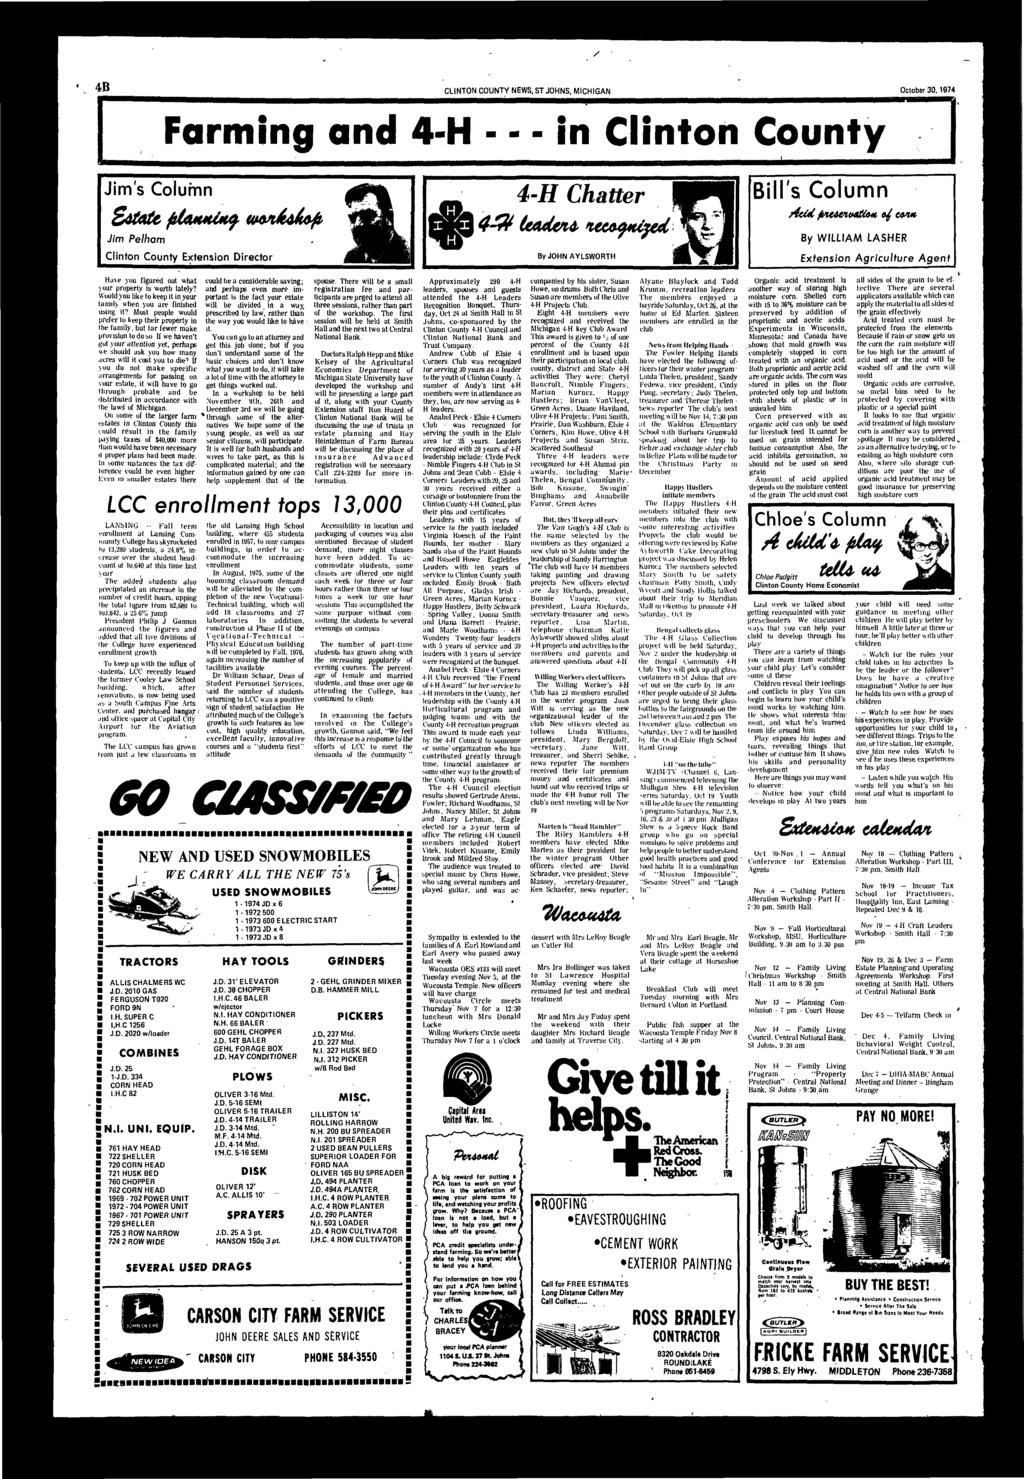 / 4B CLINTON COUNTY NEWS, ST JOHNS, MICHIGAN October 30,1974 Jims Column Jim Pelhm Clinton County Extension irector 4-H Chtter ES4& leden* teyujed ByJQHNAYLSWORTH Bills Column Acid fvuwtwrtfo* & CM*